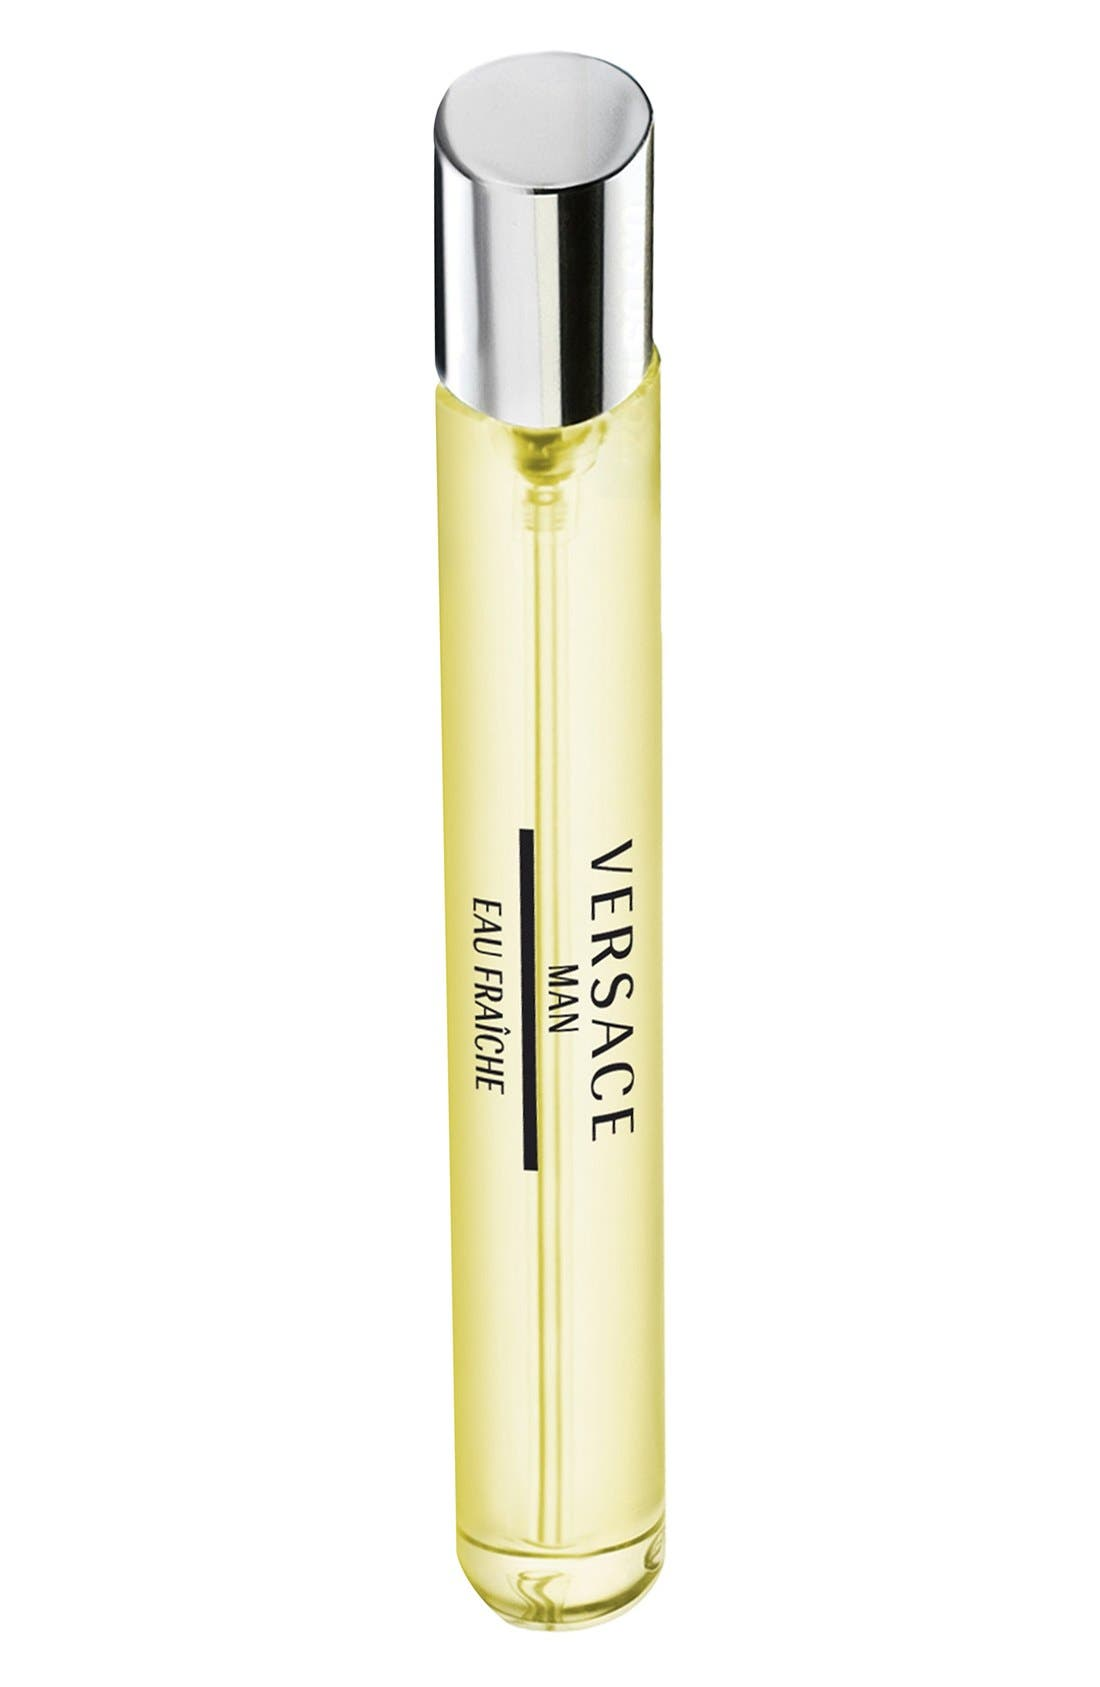 Versace Man 'Eau Fraîche' Eau de Toilette Travel Spray